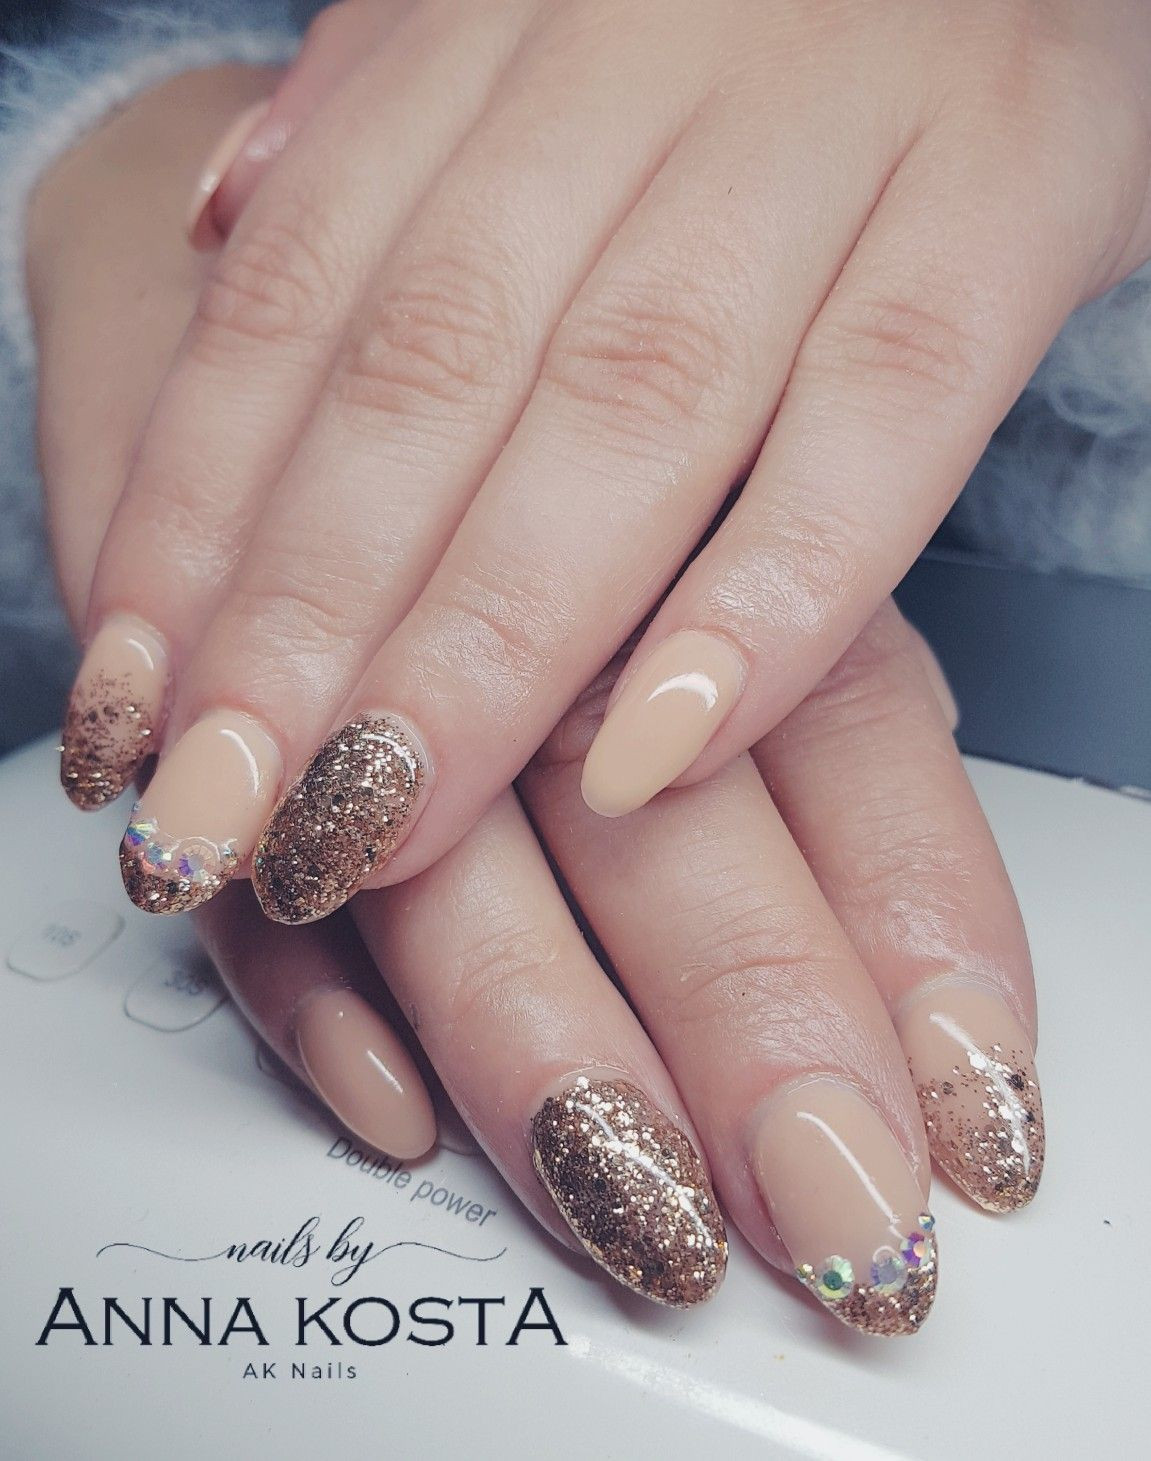 How To Do Glitter Acrylic Nails  Almomd shape acrylic infill with golden glitter and